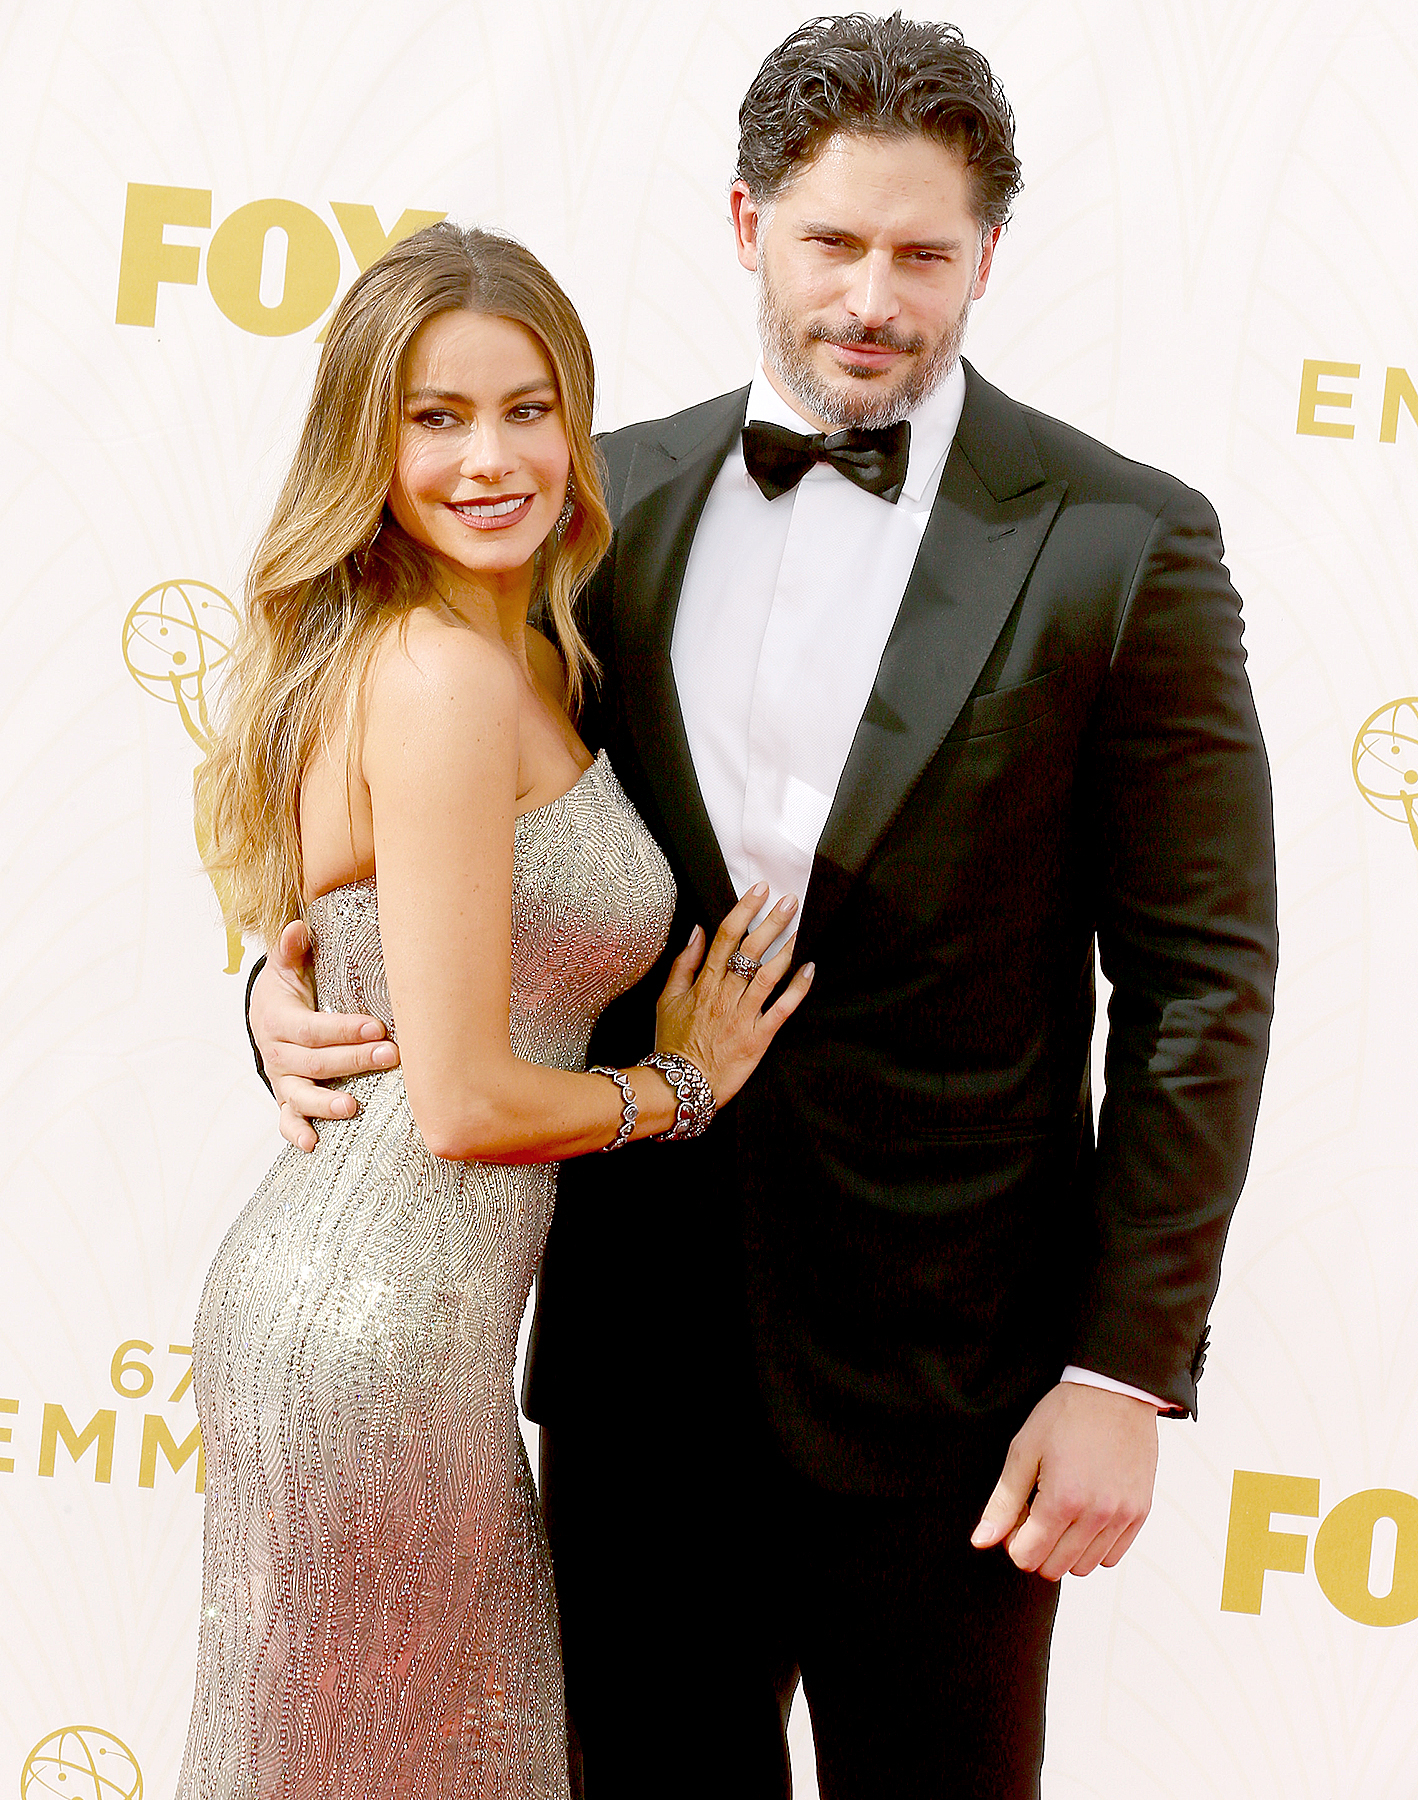 Sofia Vergara and Joe Manganiello attend the 67th Annual Primetime Emmy Awards at Microsoft Theater on September 20, 2015 in Los Angeles, California.